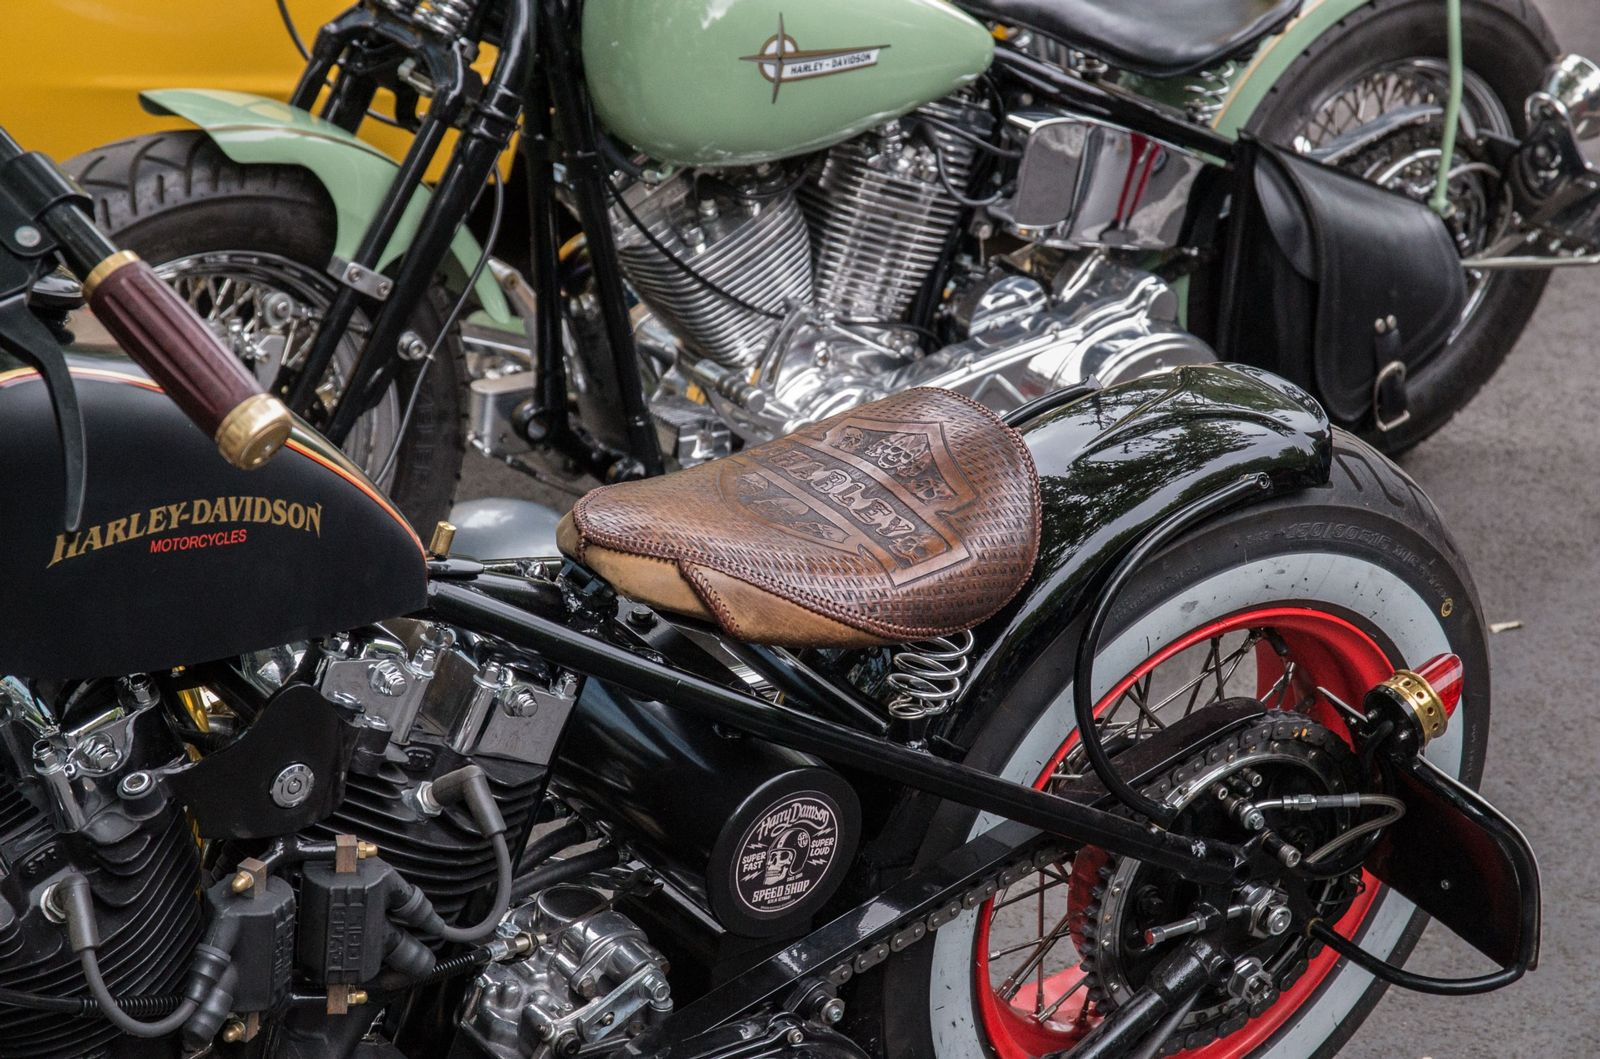 Classic Harley Davidson motorcycle with custom made leather seat